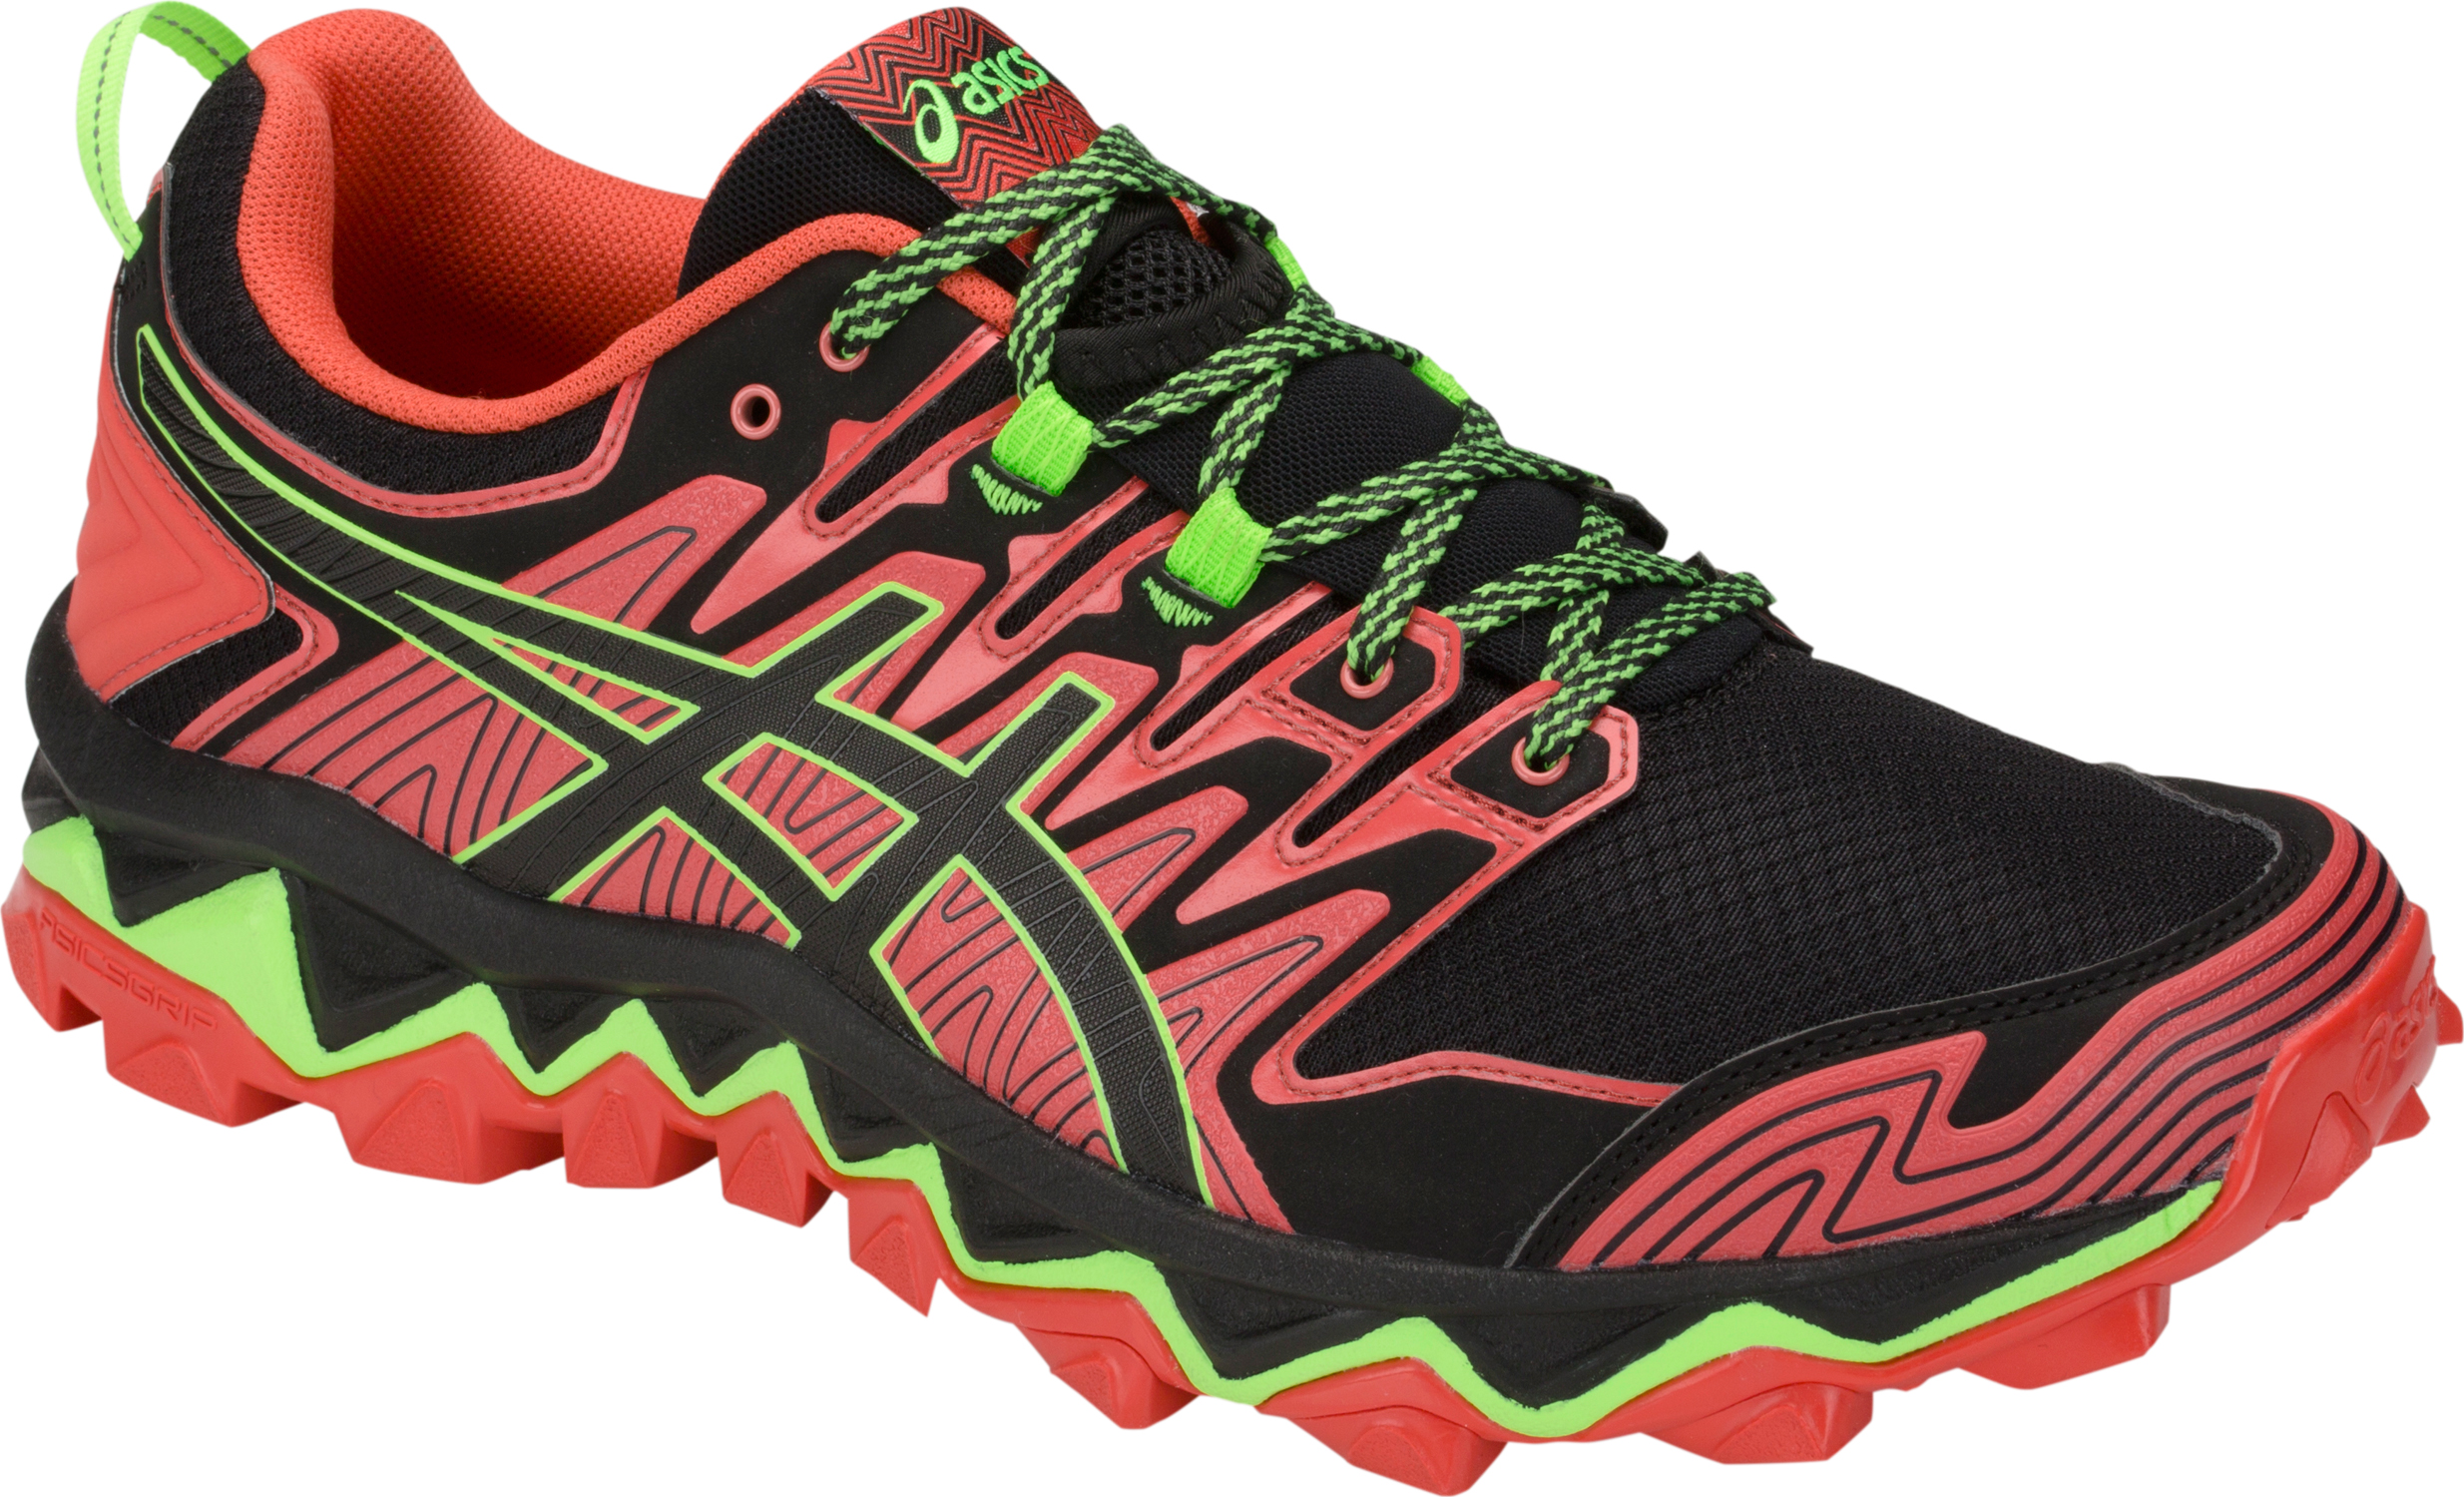 new style 022e4 0f0cd Asics trail running shoes | MEC